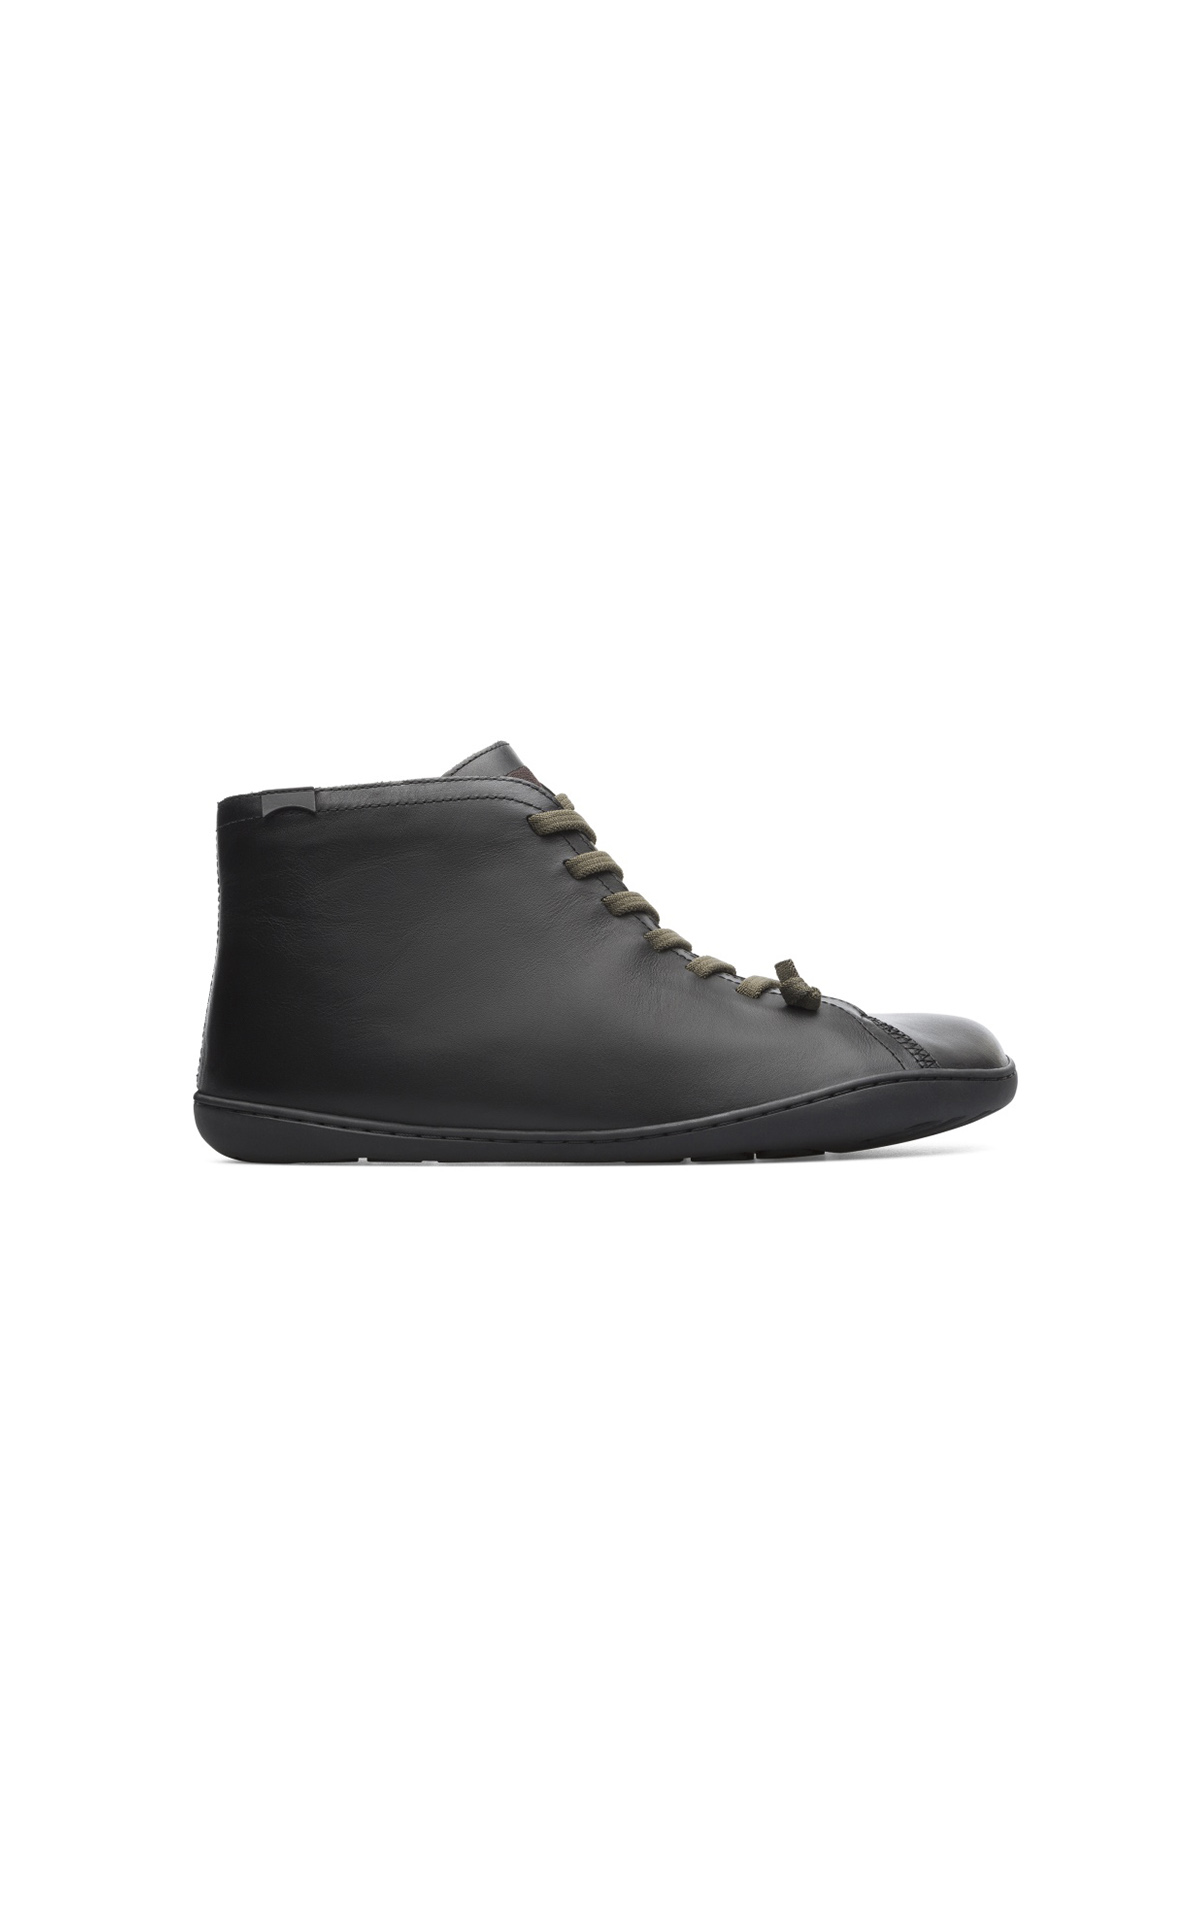 Black leather sneakers man Camper